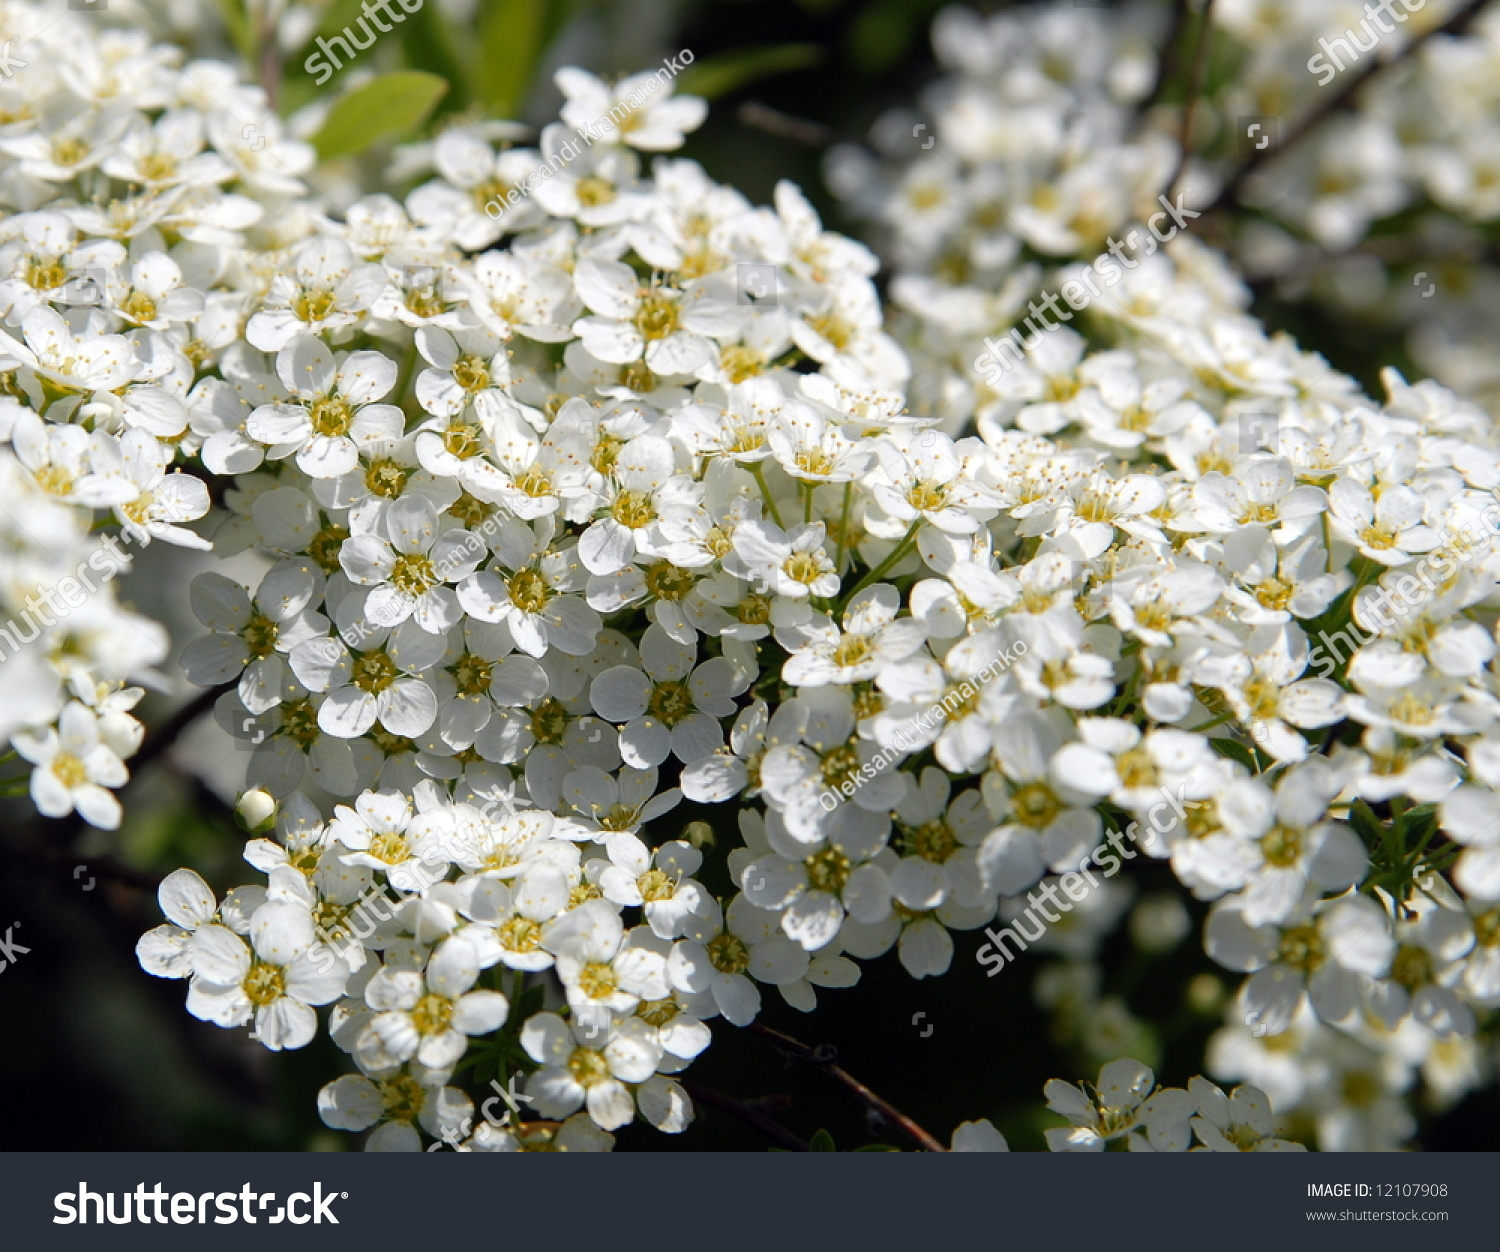 Many small white flowers on bush stock photo edit now 12107908 many small white flowers on a bush mightylinksfo